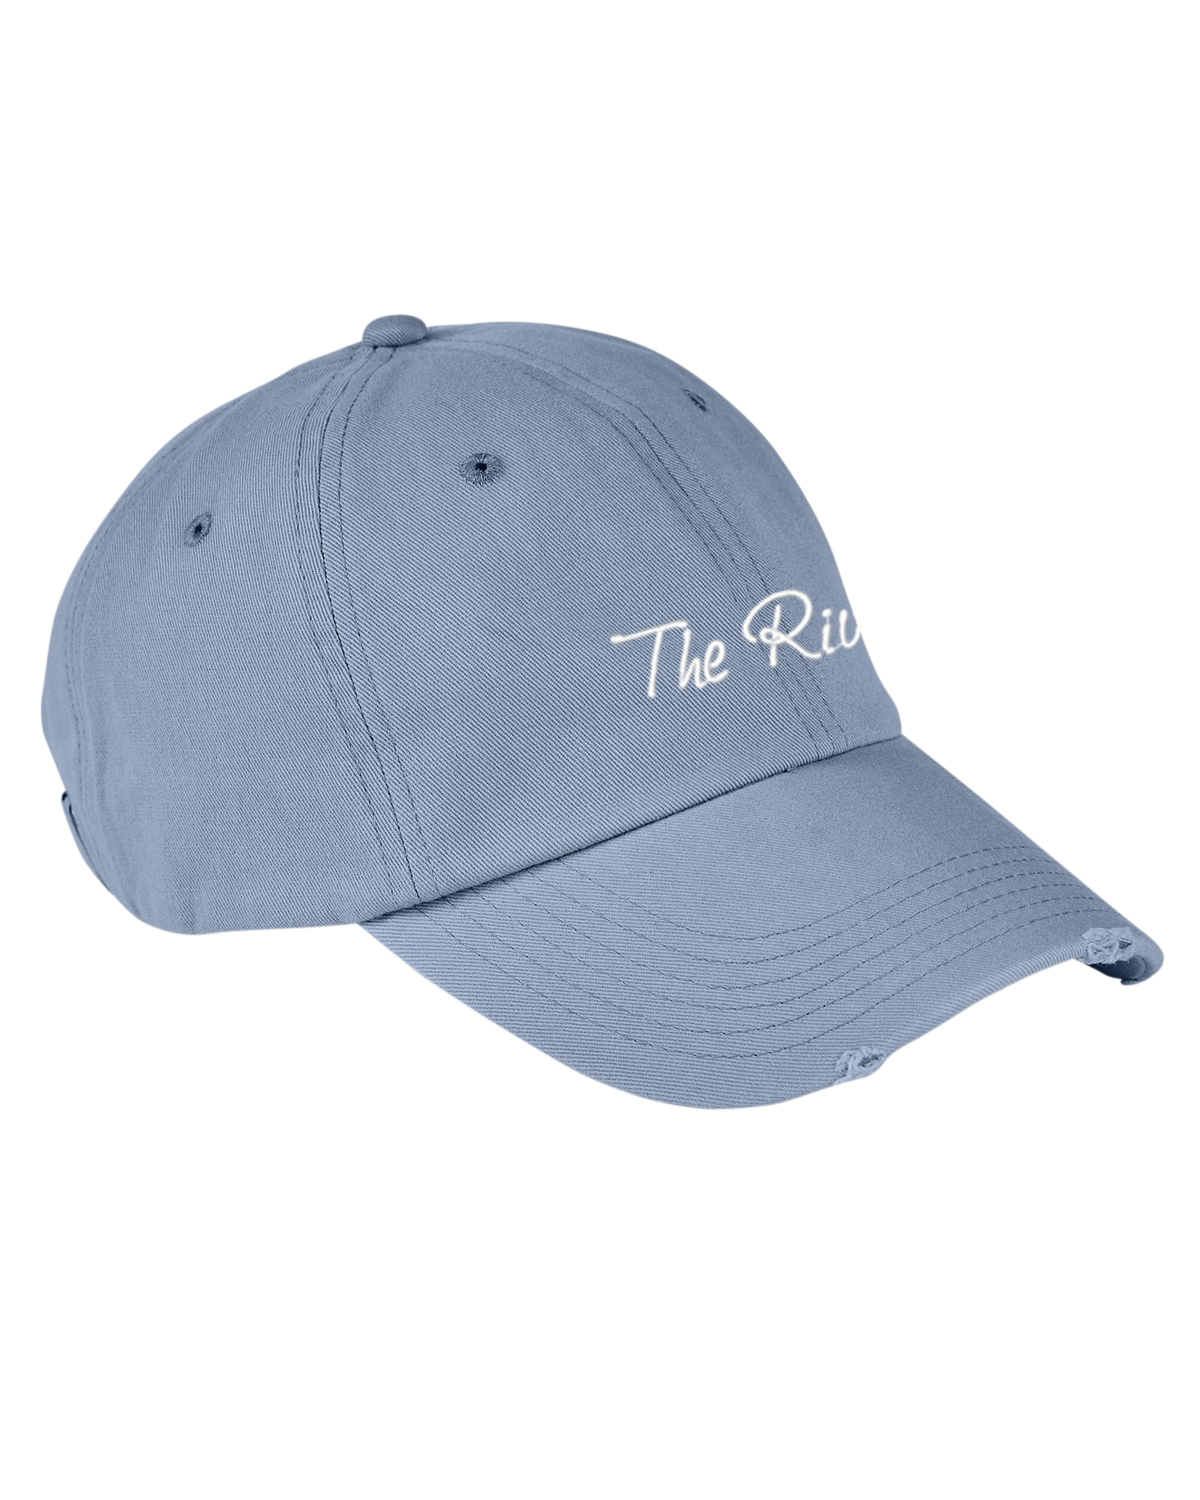 AP1920 Authentic Pigment Distressed 6-Panel Cap Niagara